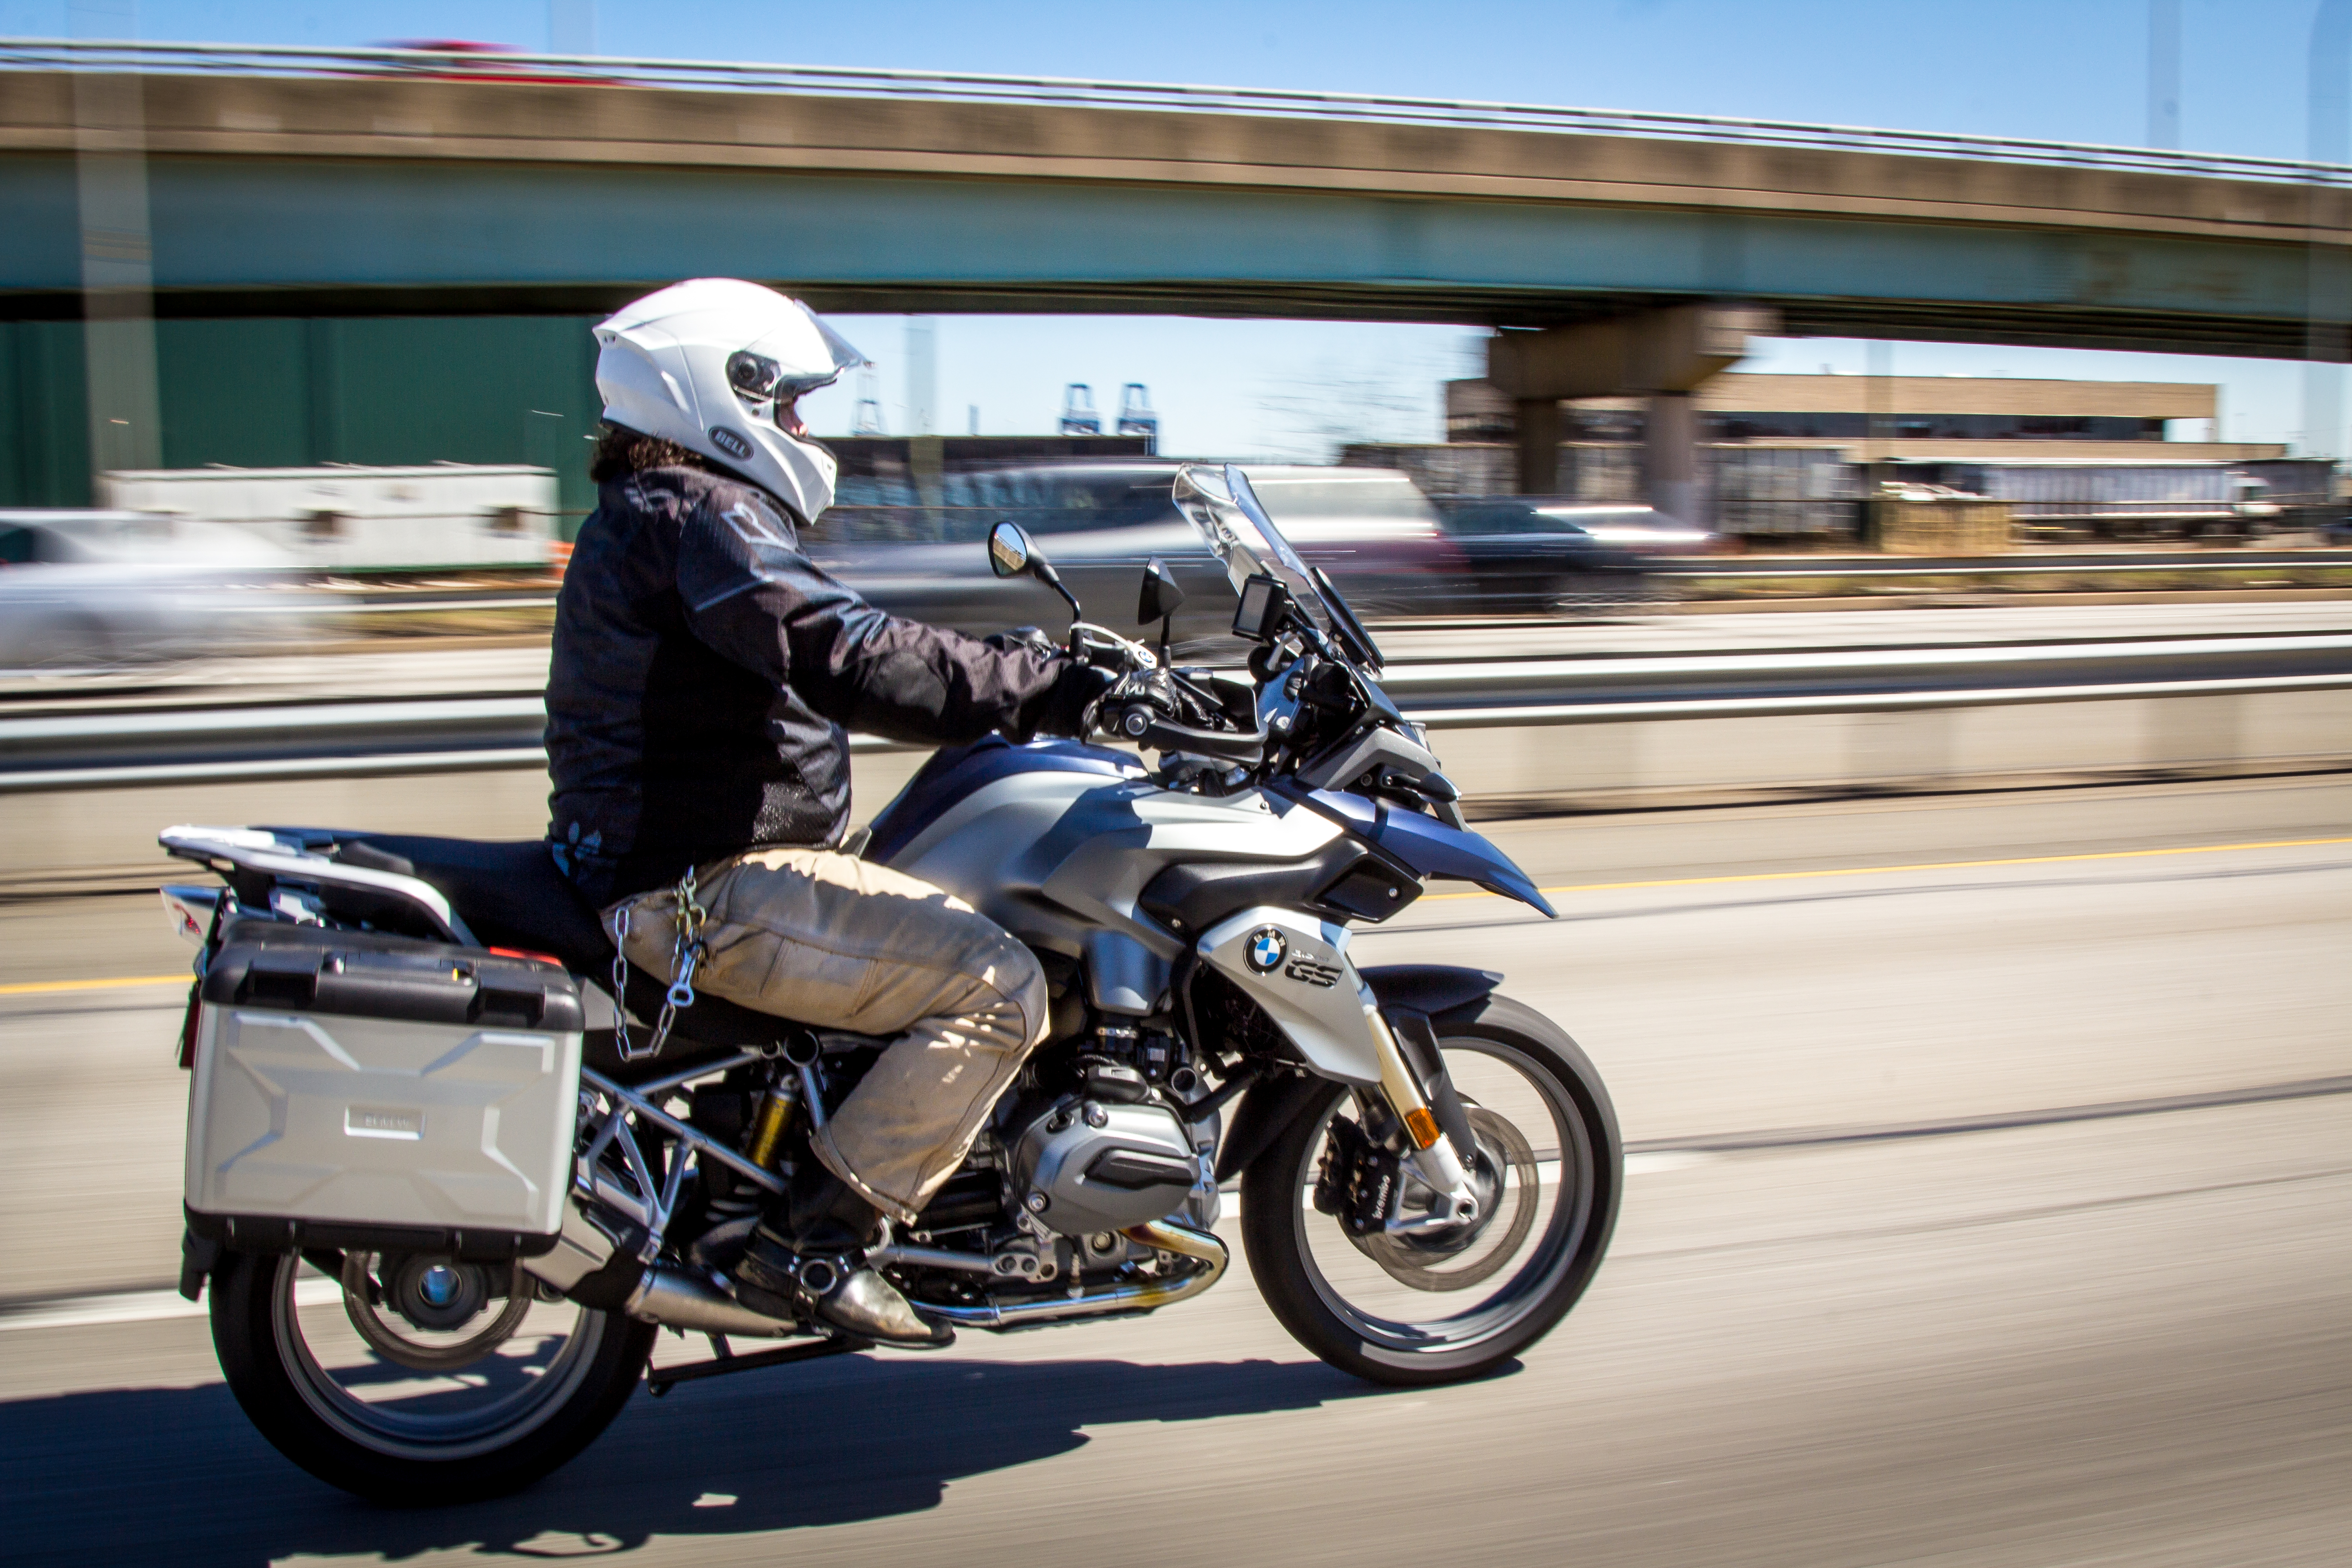 An ode to (not a review of) the BMW R 1200 GS - RevZilla